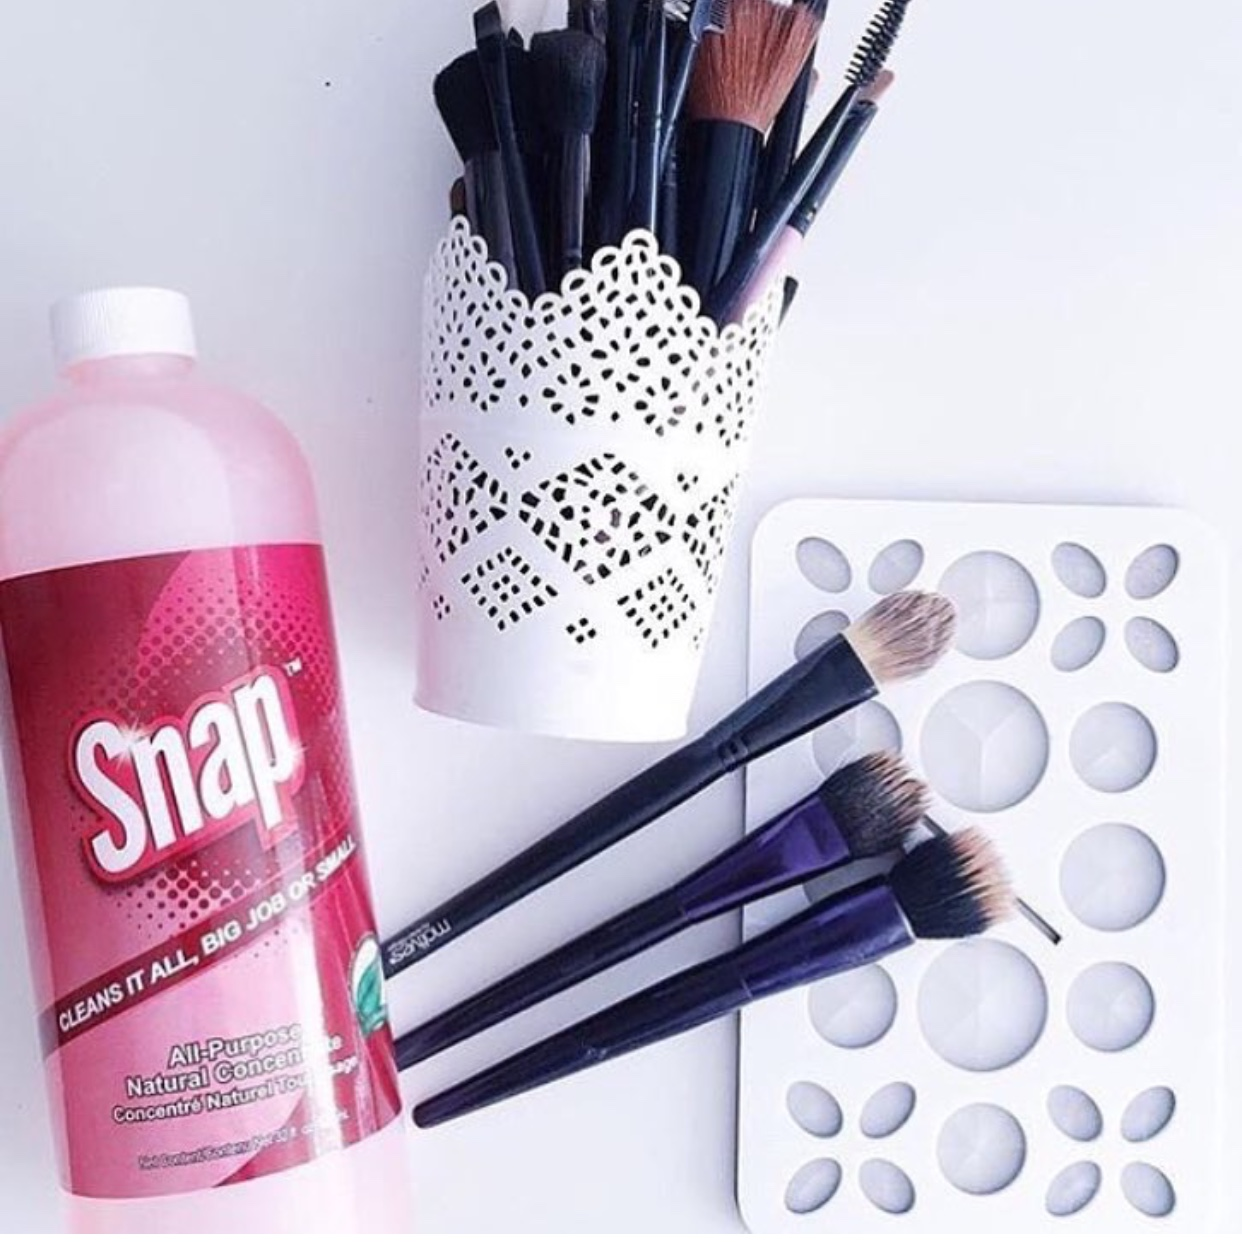 Cleaning Your Makeup Brushes: Dos & Don'ts